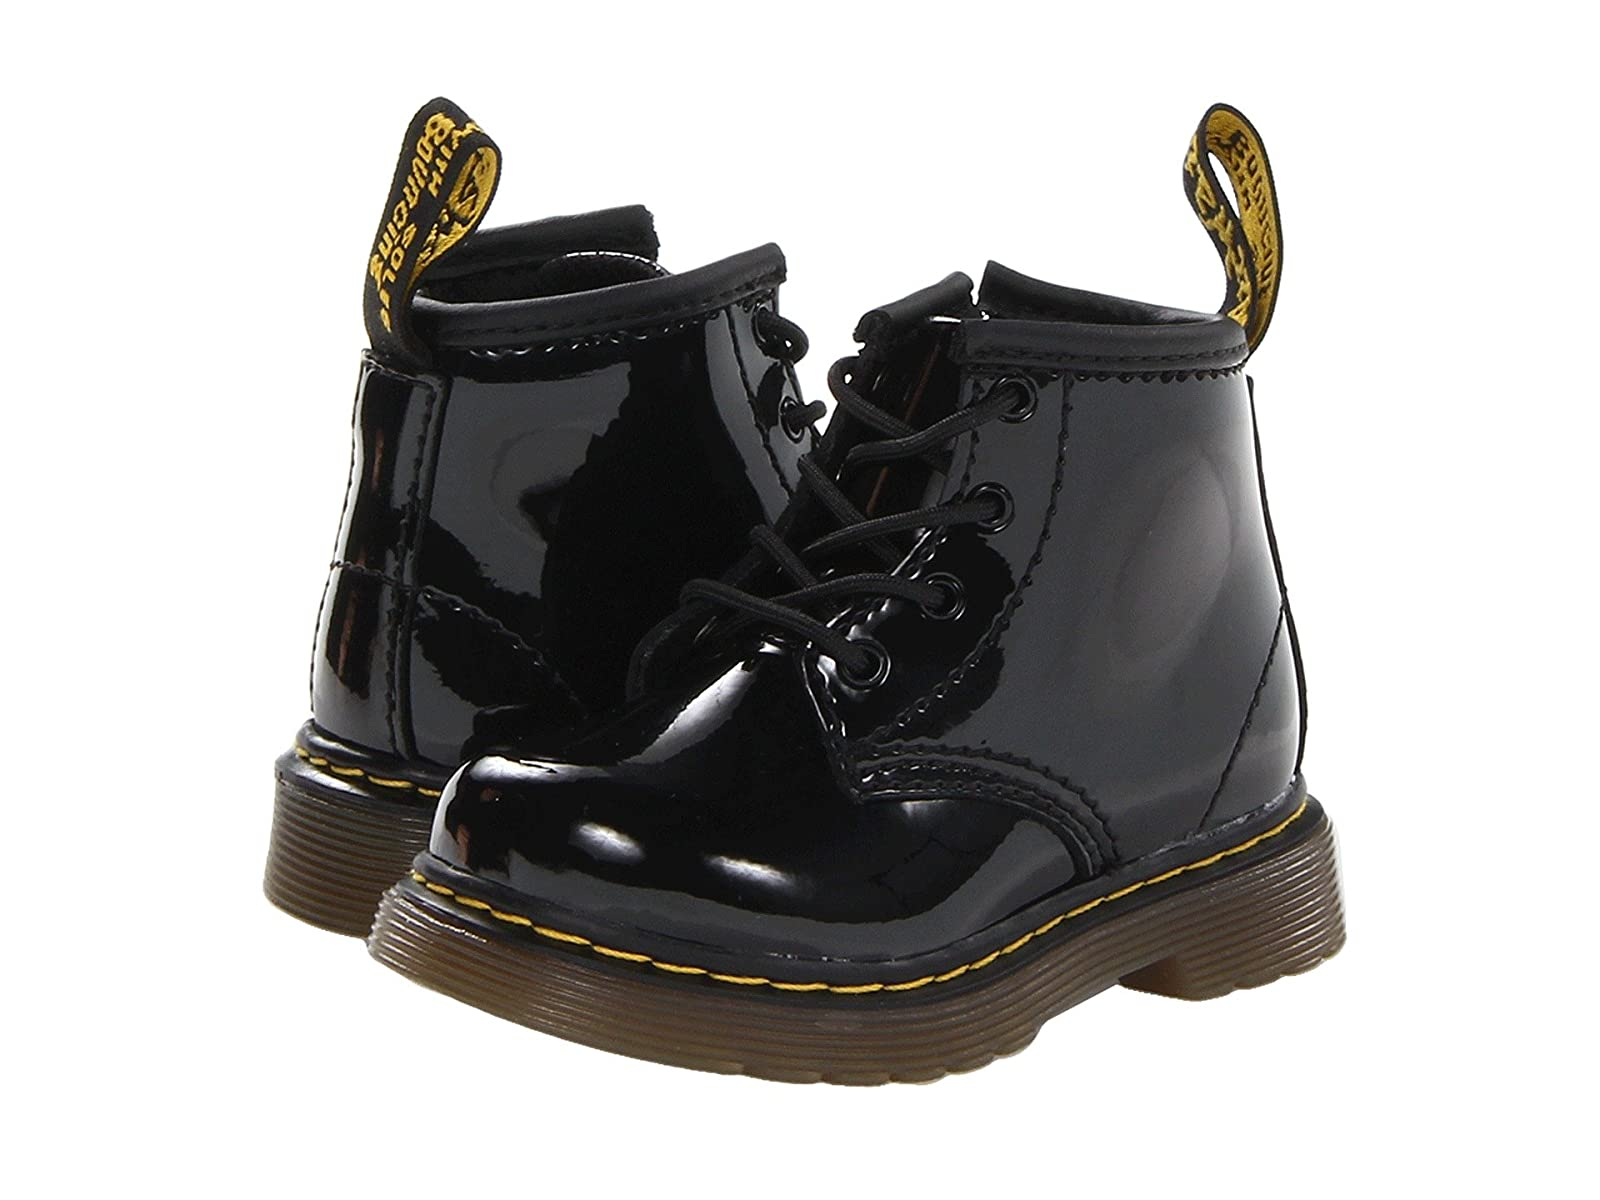 Dr. Martens Kid's Collection 1460 Infant Brooklee B Boot (Toddler)Affordable and distinctive shoes